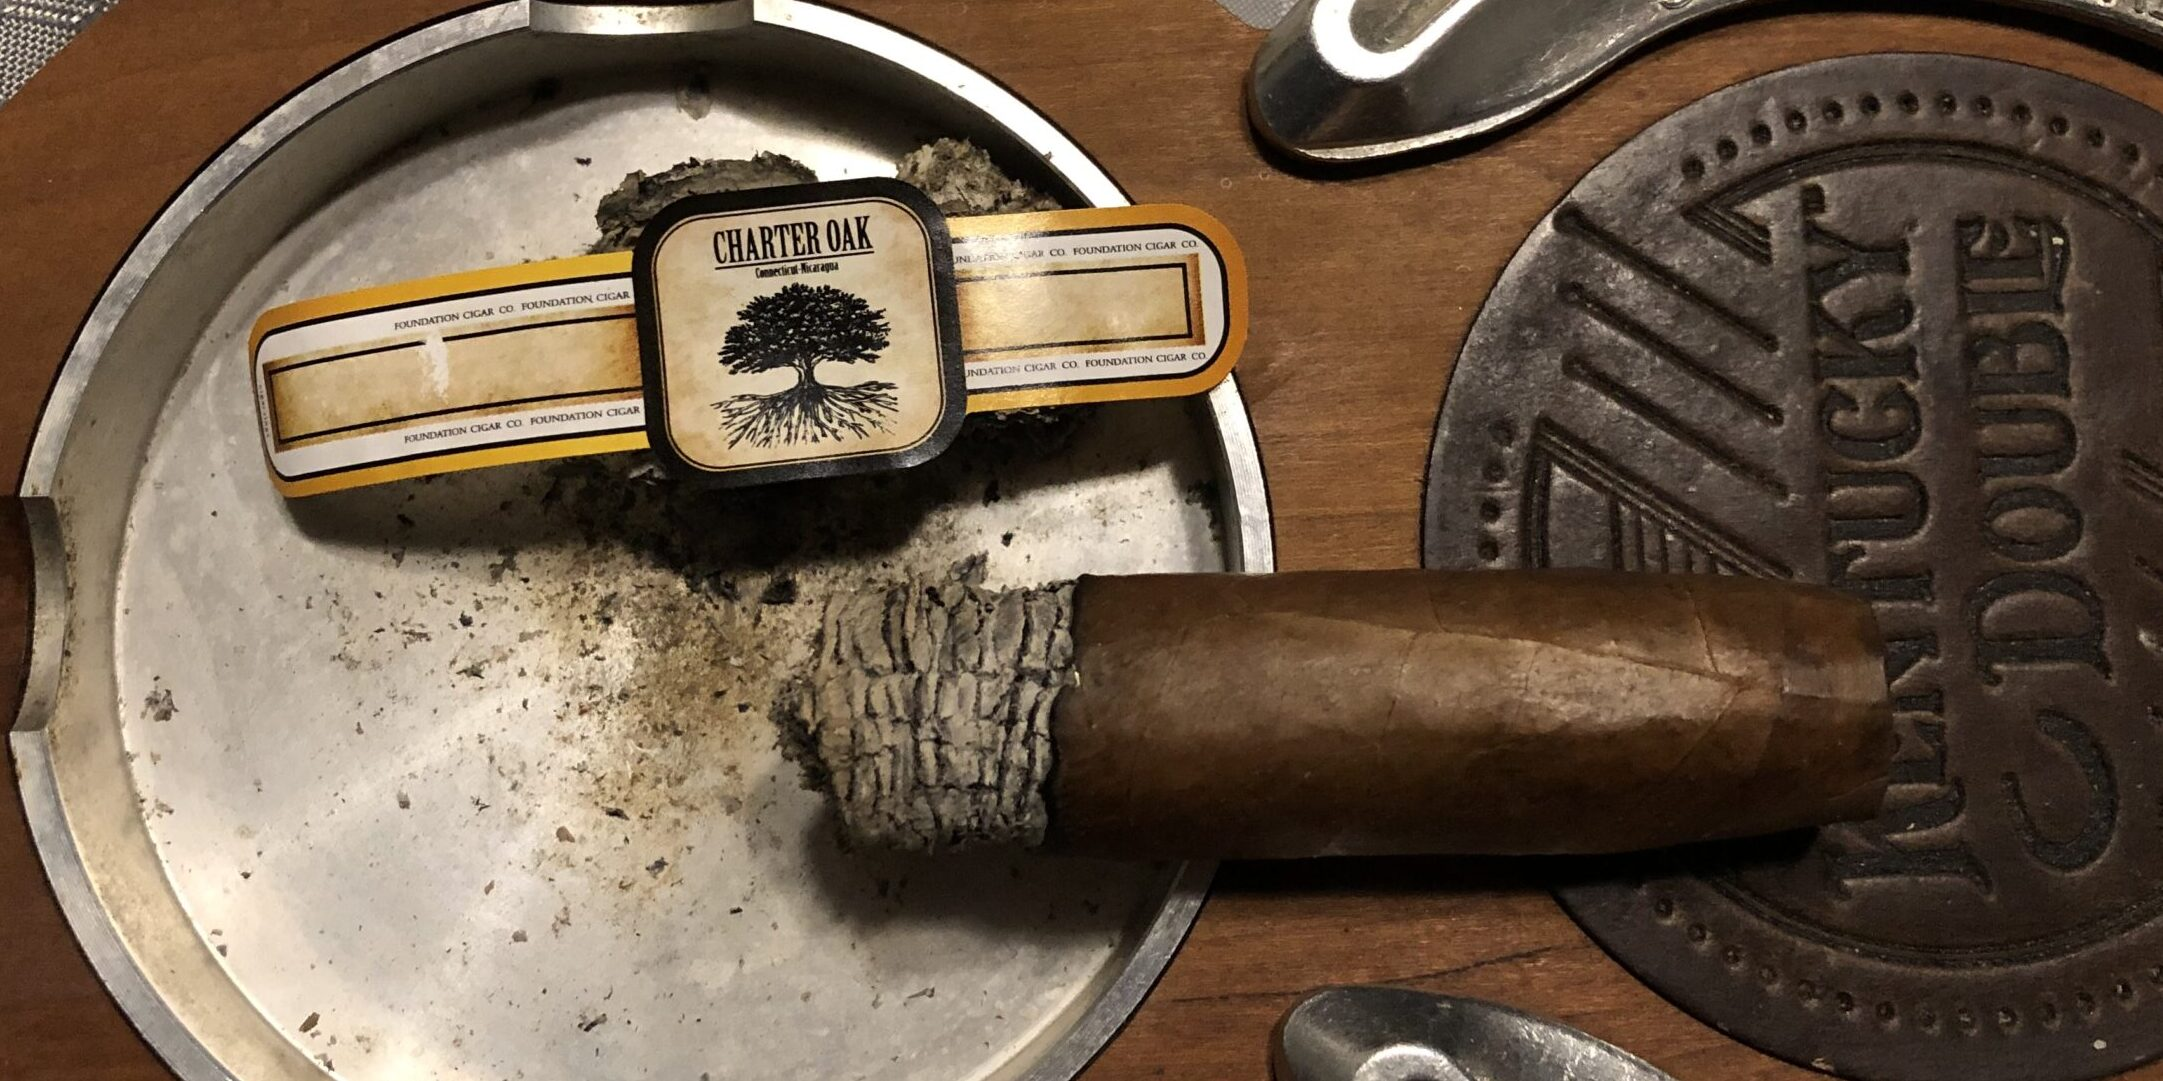 You are currently viewing Charter Oak Habano Torpedo Cigar Review